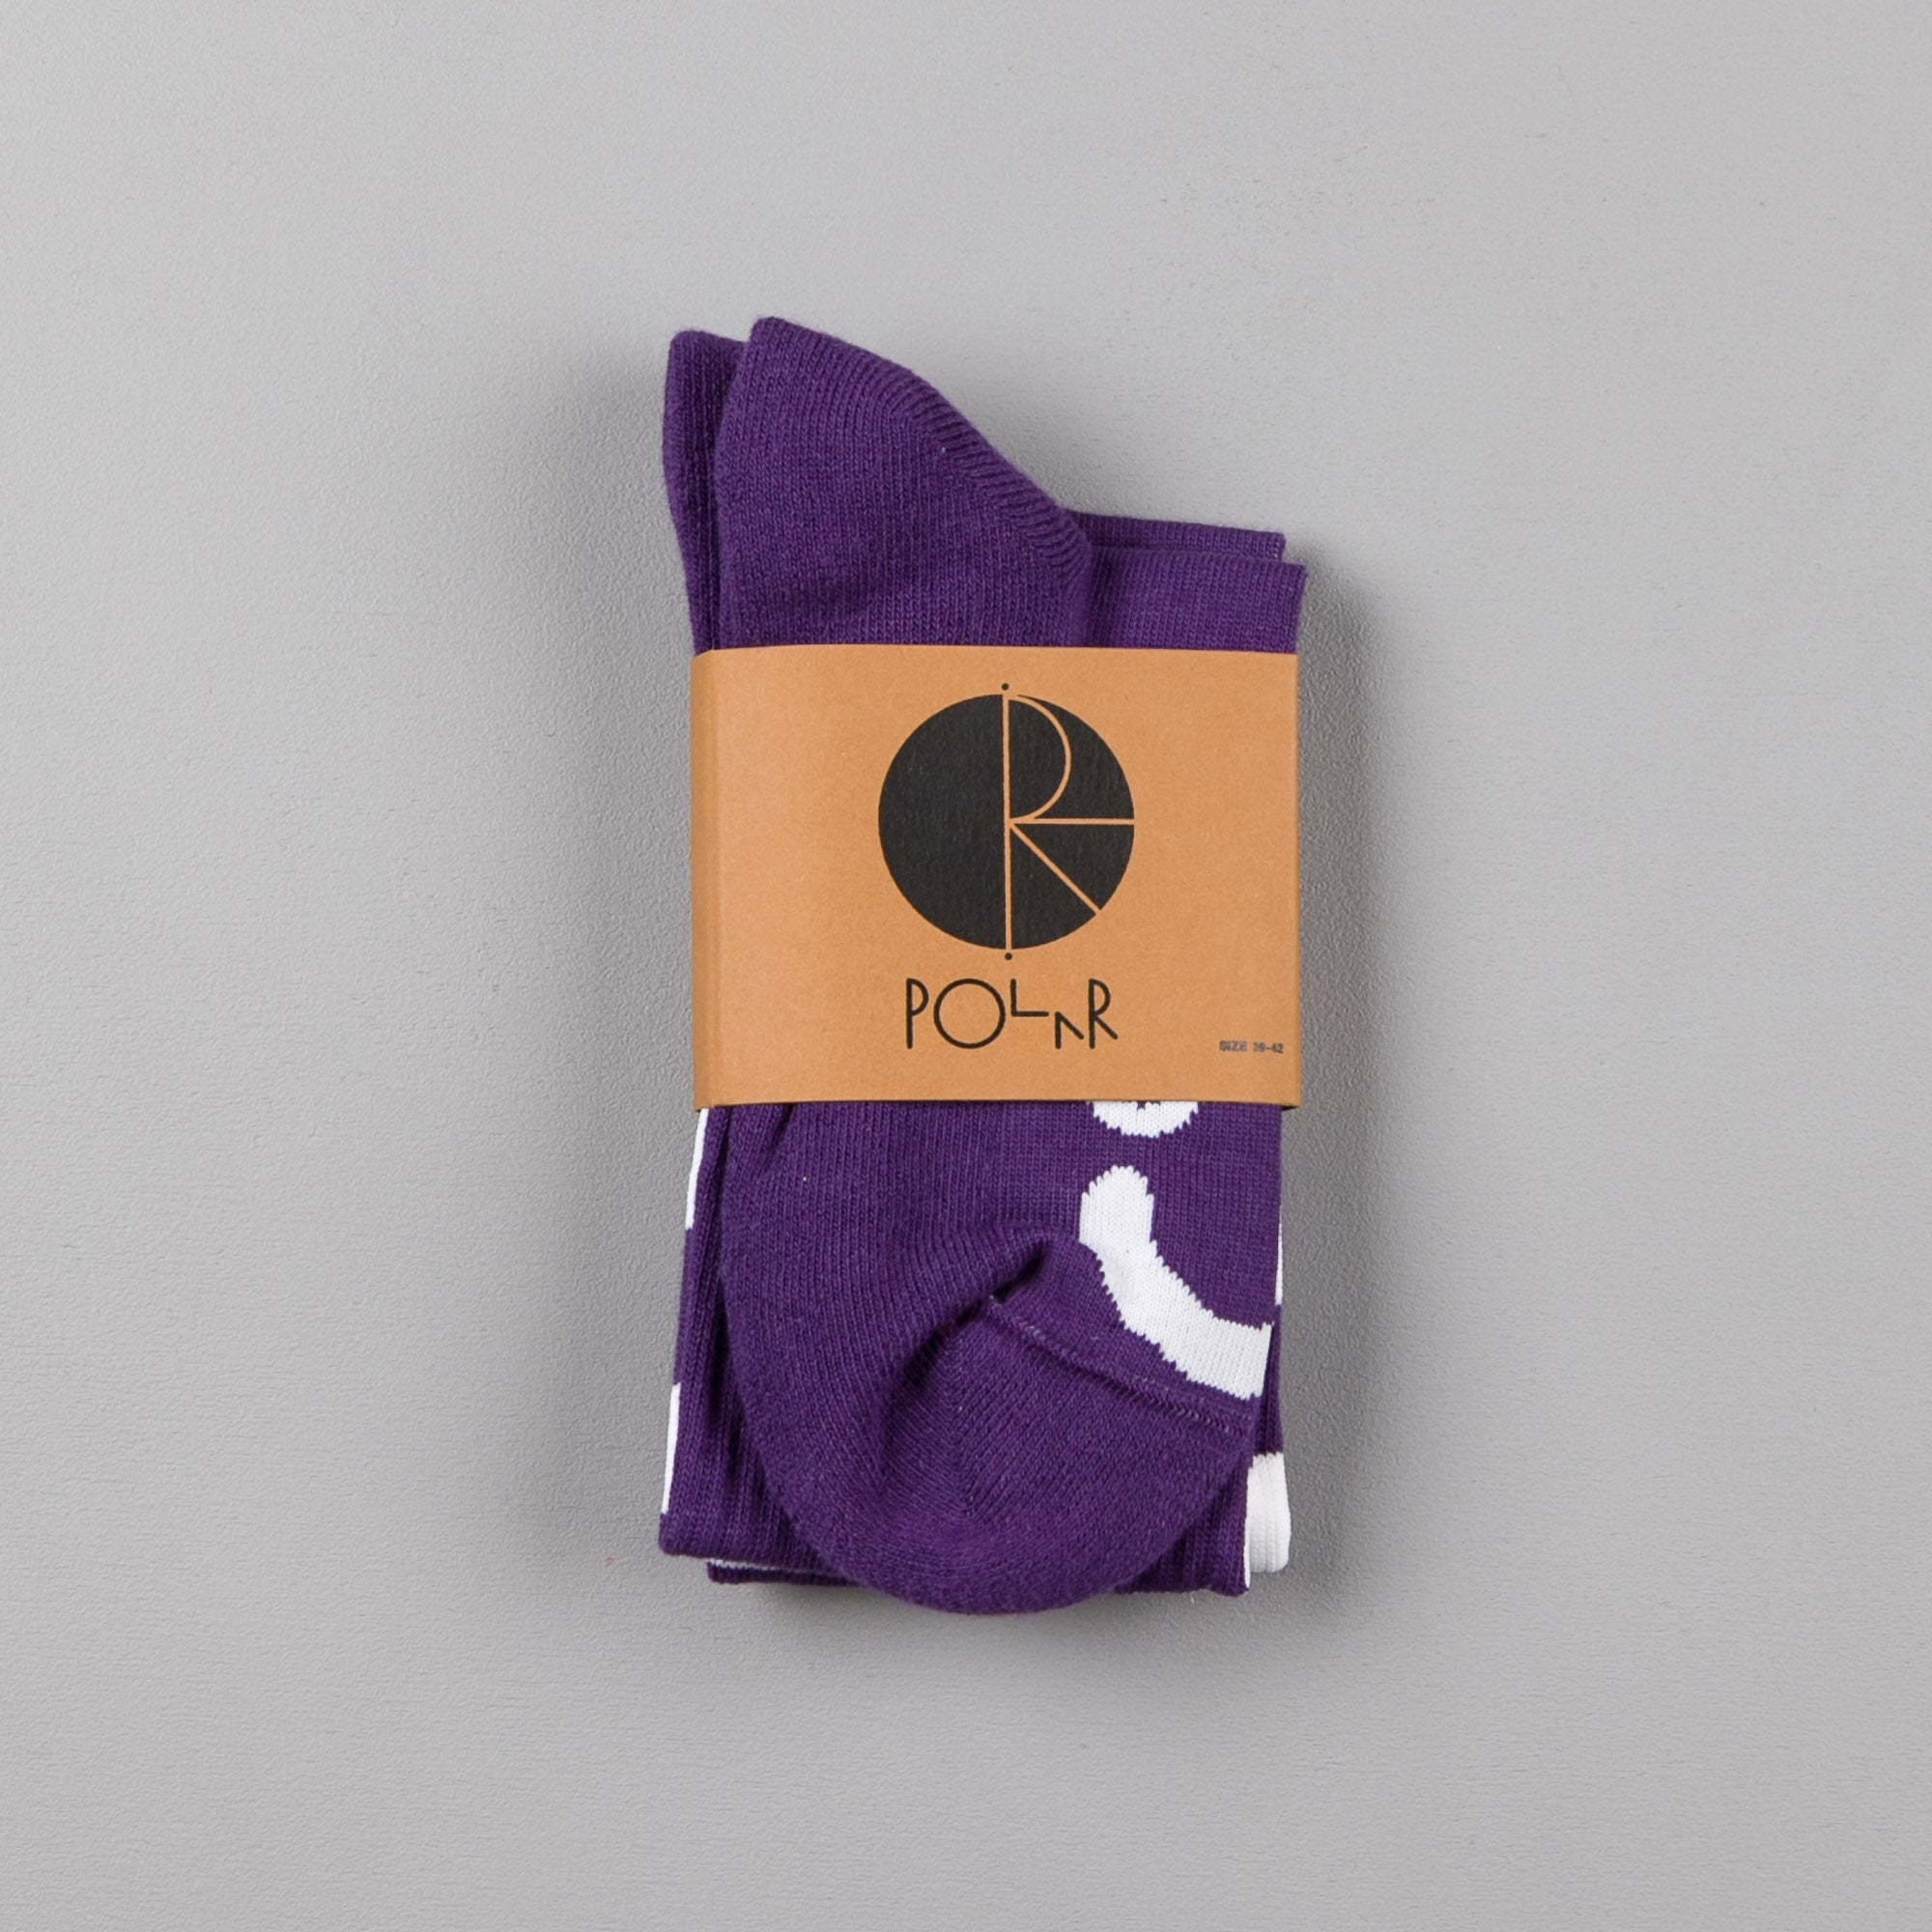 Polar Happy Sad Classic Socks - Deep Prune / White